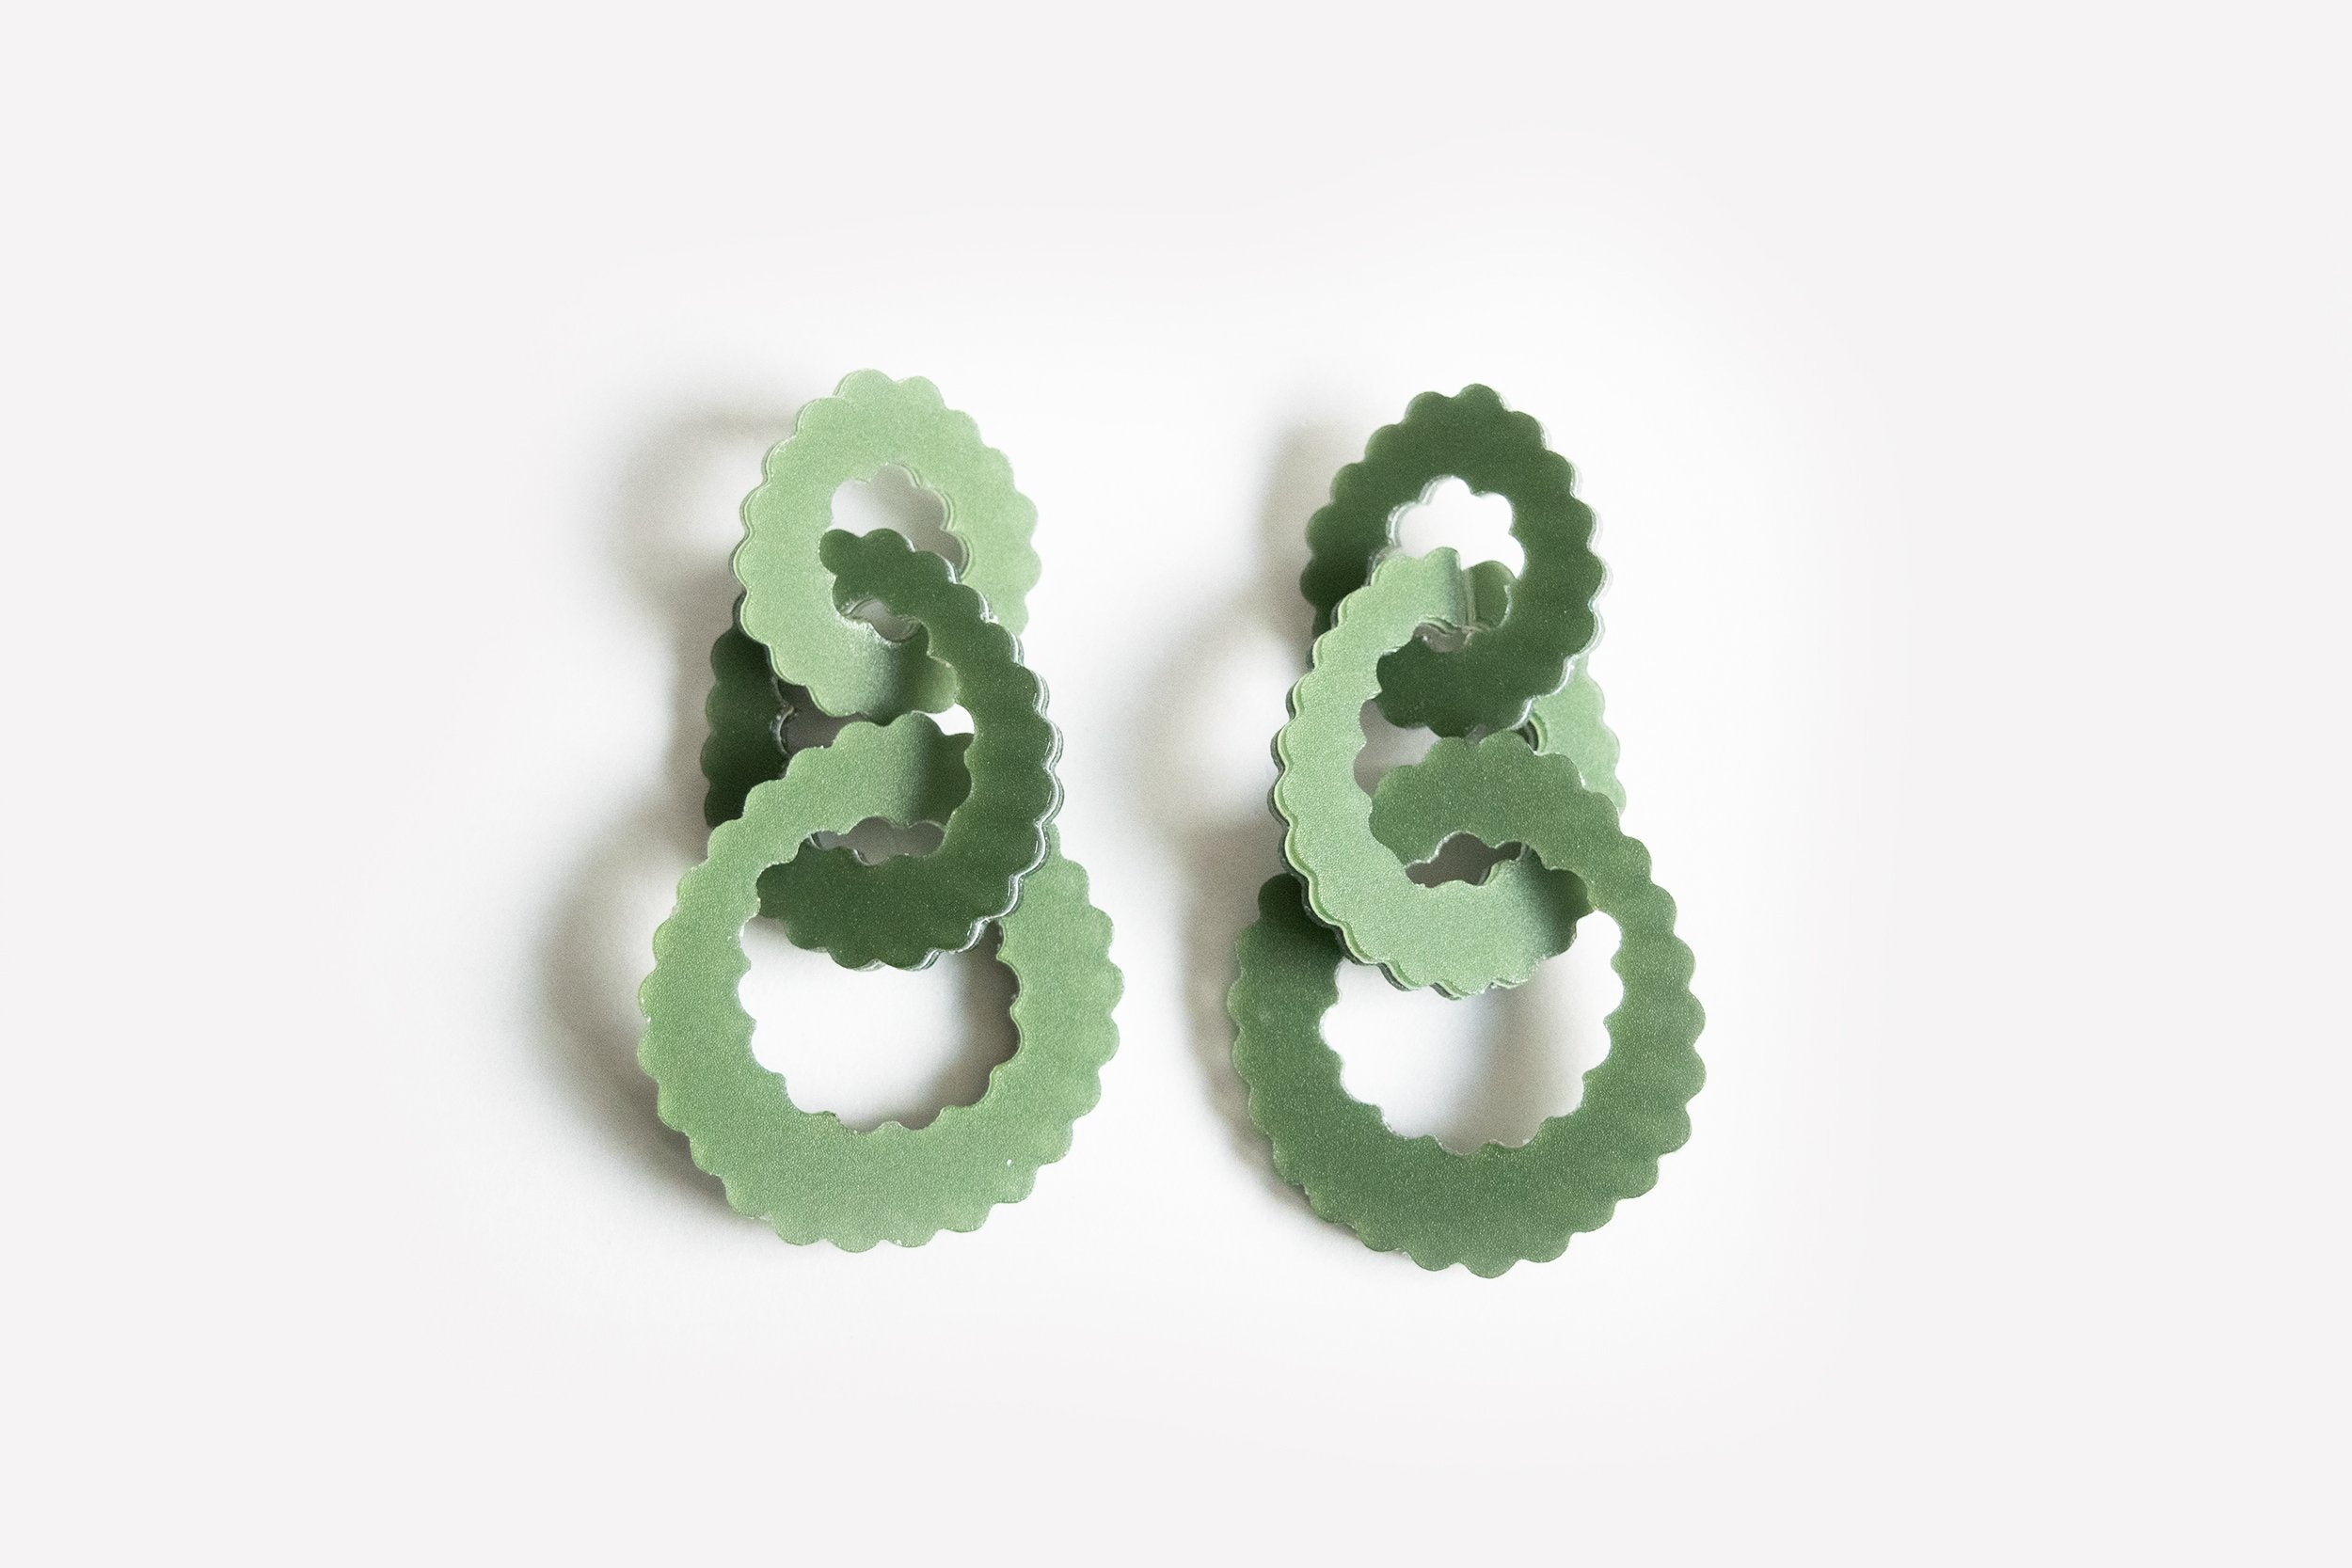 Ecoresin Scallop Earrings - Triple Link